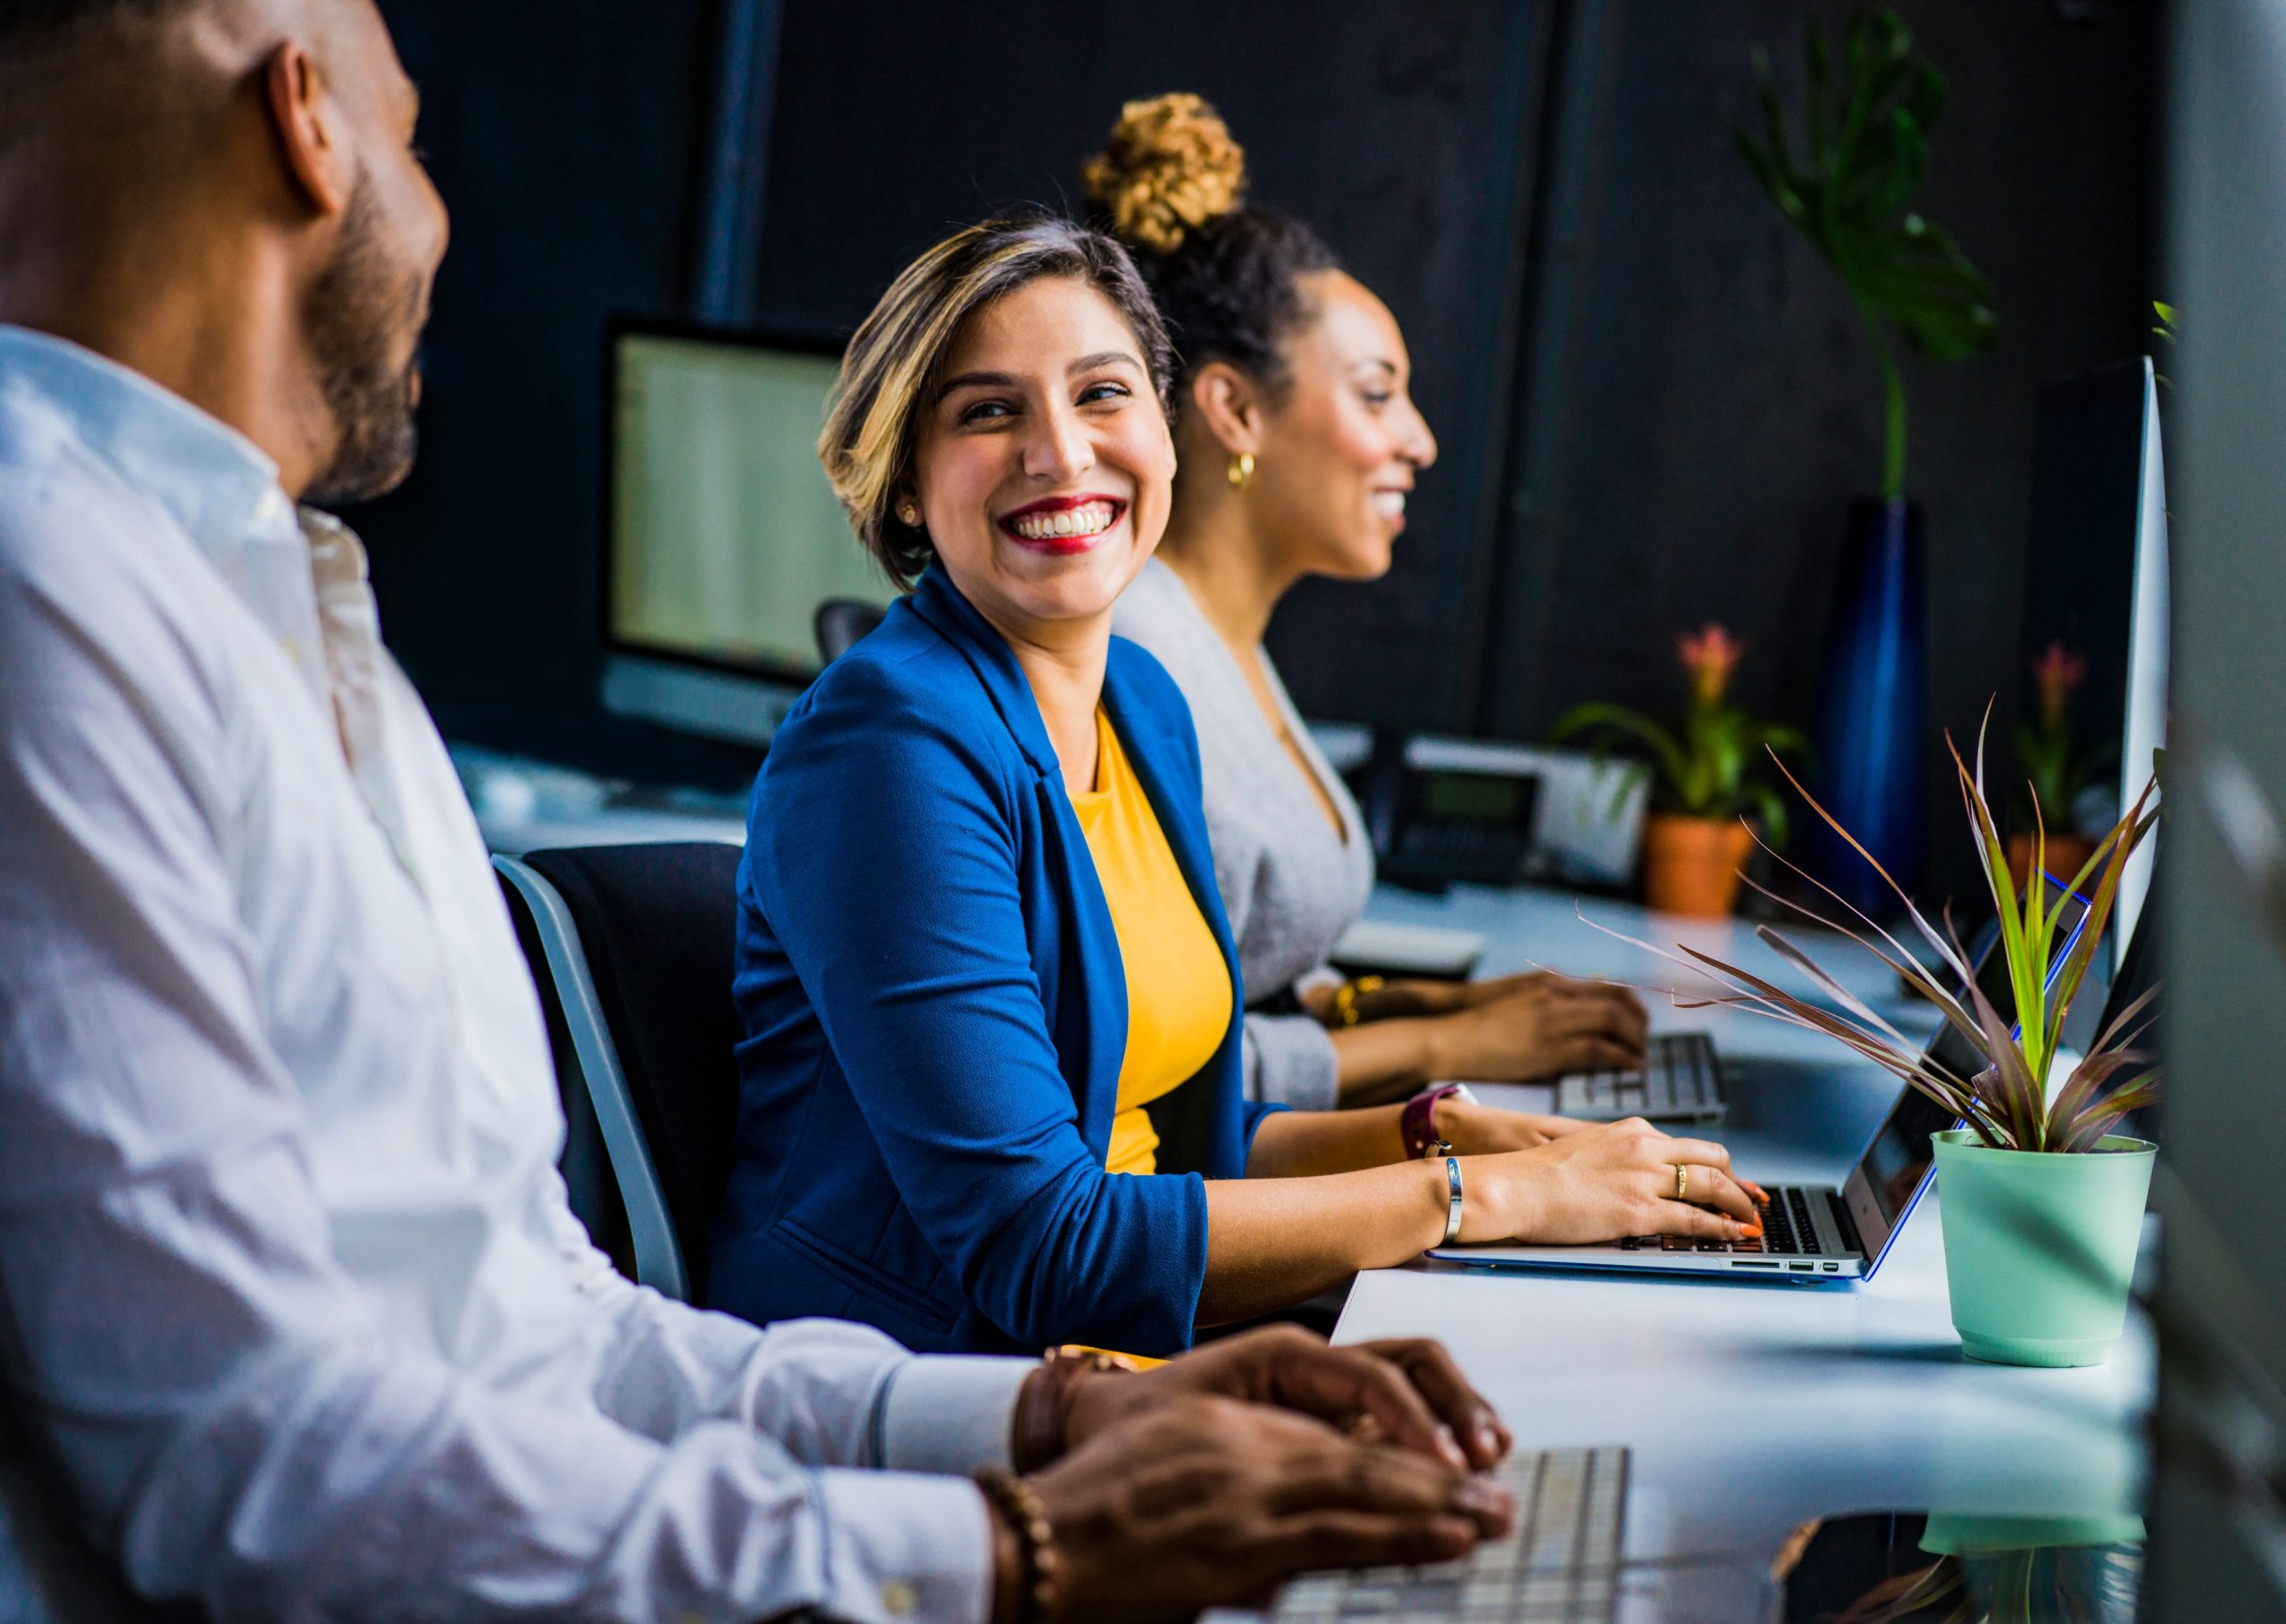 Photo: Woman in workforce smiling at office coworkers.